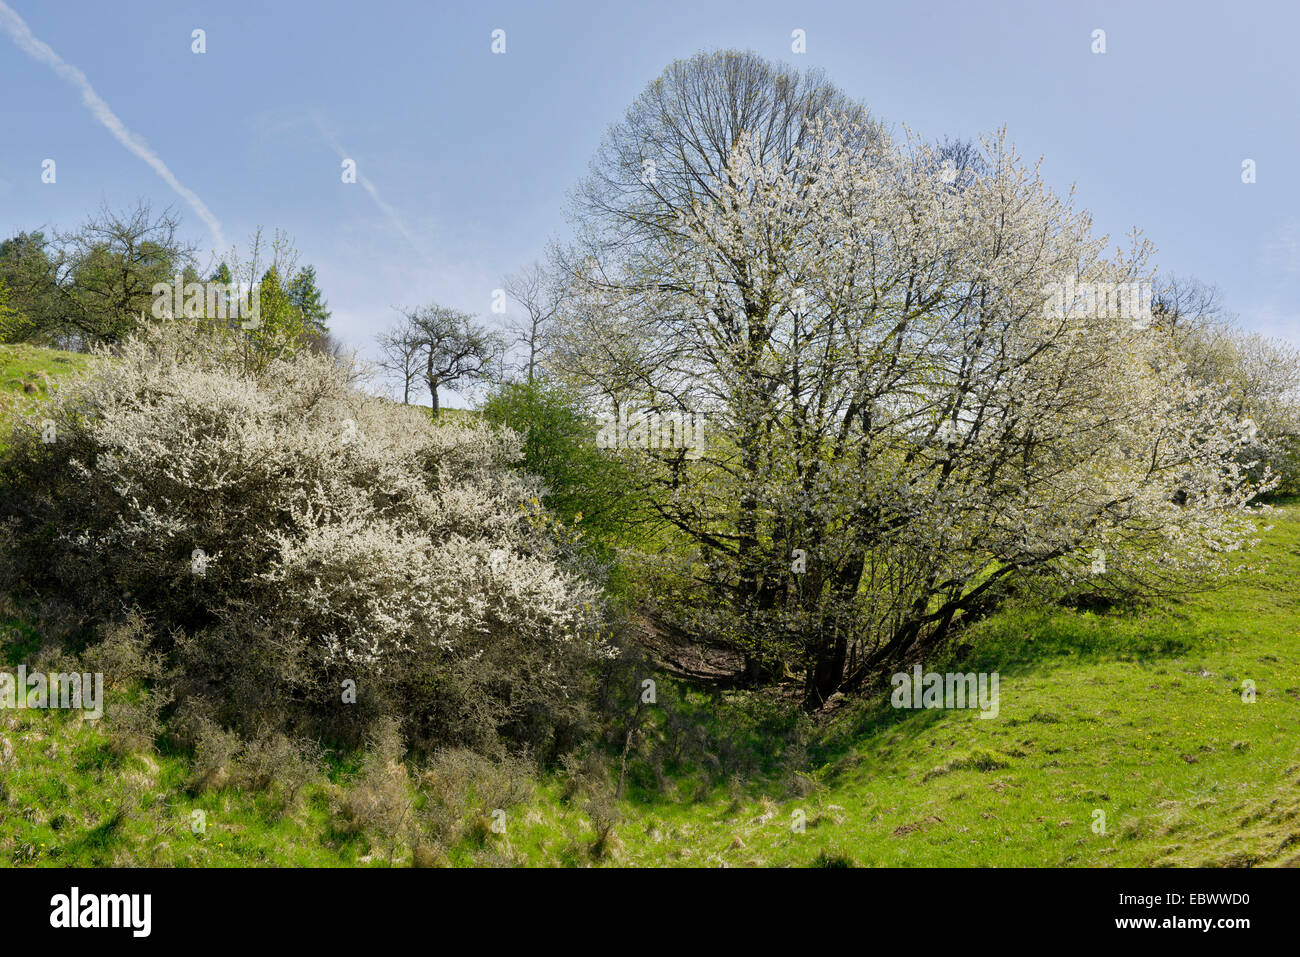 Wild cherry, Sweet cherry, gean, mazzard (Prunus avium), landscape with blooming cherry trees and blackthorns, Germany, - Stock Image